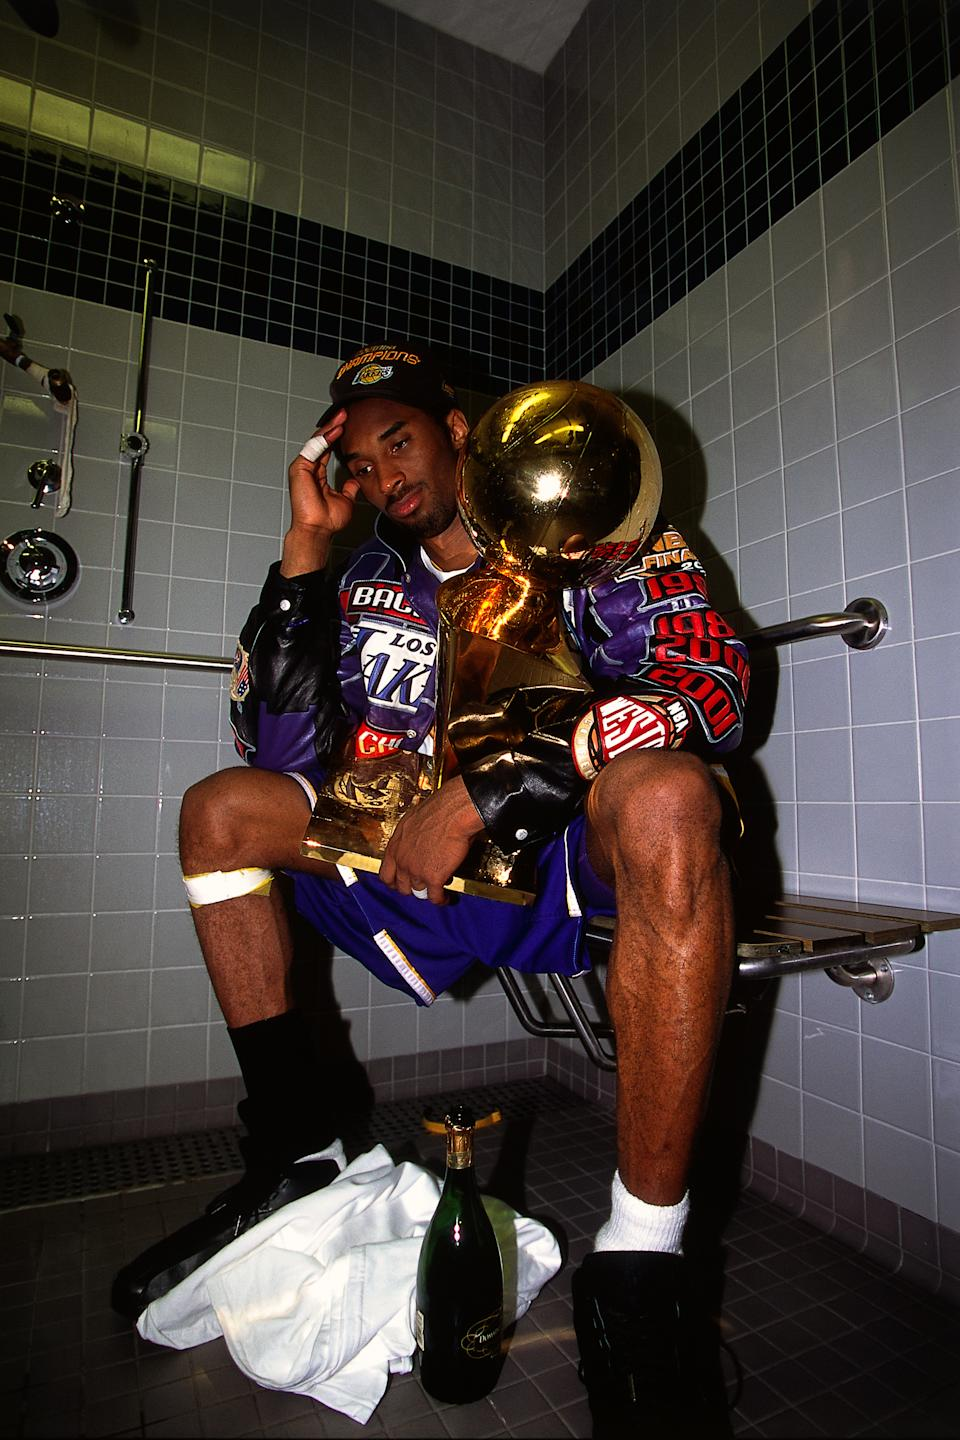 After the Lakers defeated the Philadelphia 76ers in five games to win back-to-back championships in 2001, Kobe Bryant enjoyed a quieter moment with the Larry O'Brien Trophy and a bottle of champagne in the locker-room showers. (Robert Mora/NBAE via Getty Images)